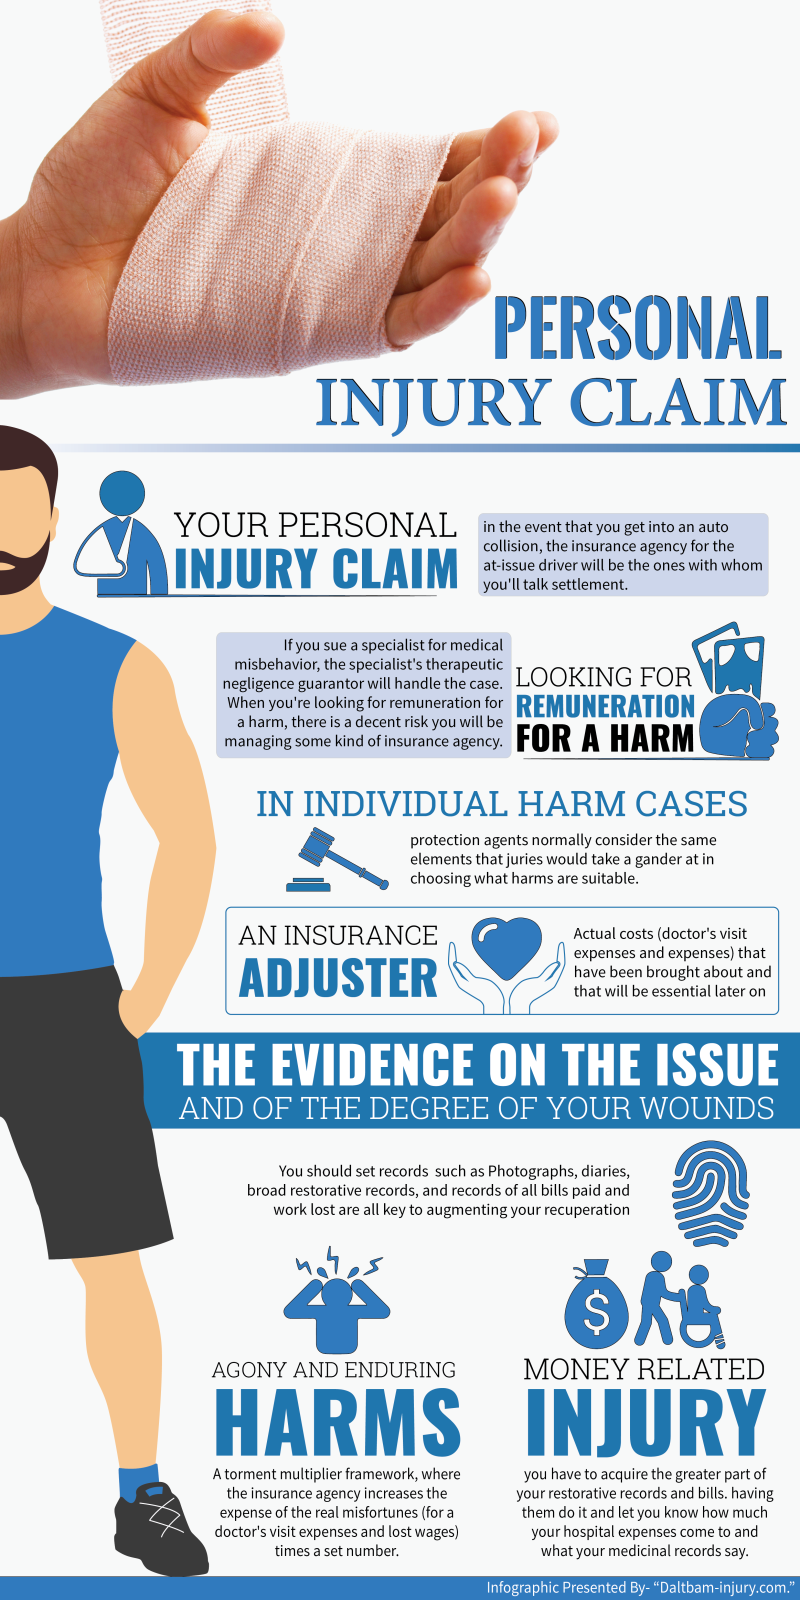 An Infographic of daltbam-injury.com